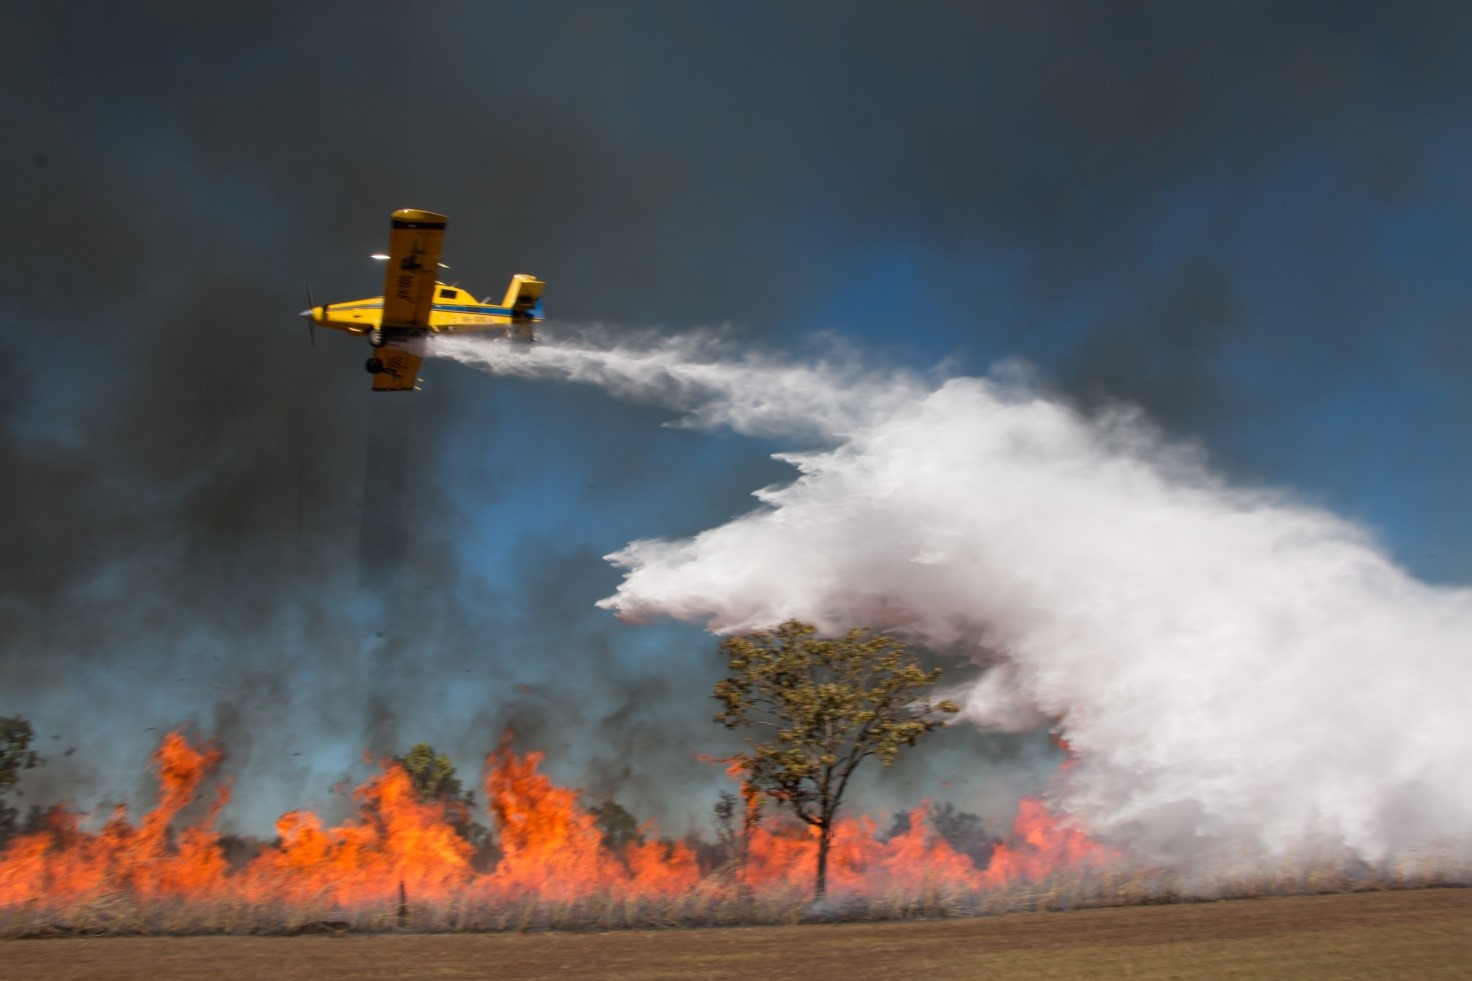 Yellow plane flying above fire burning in low trees, dropping water on the fire.